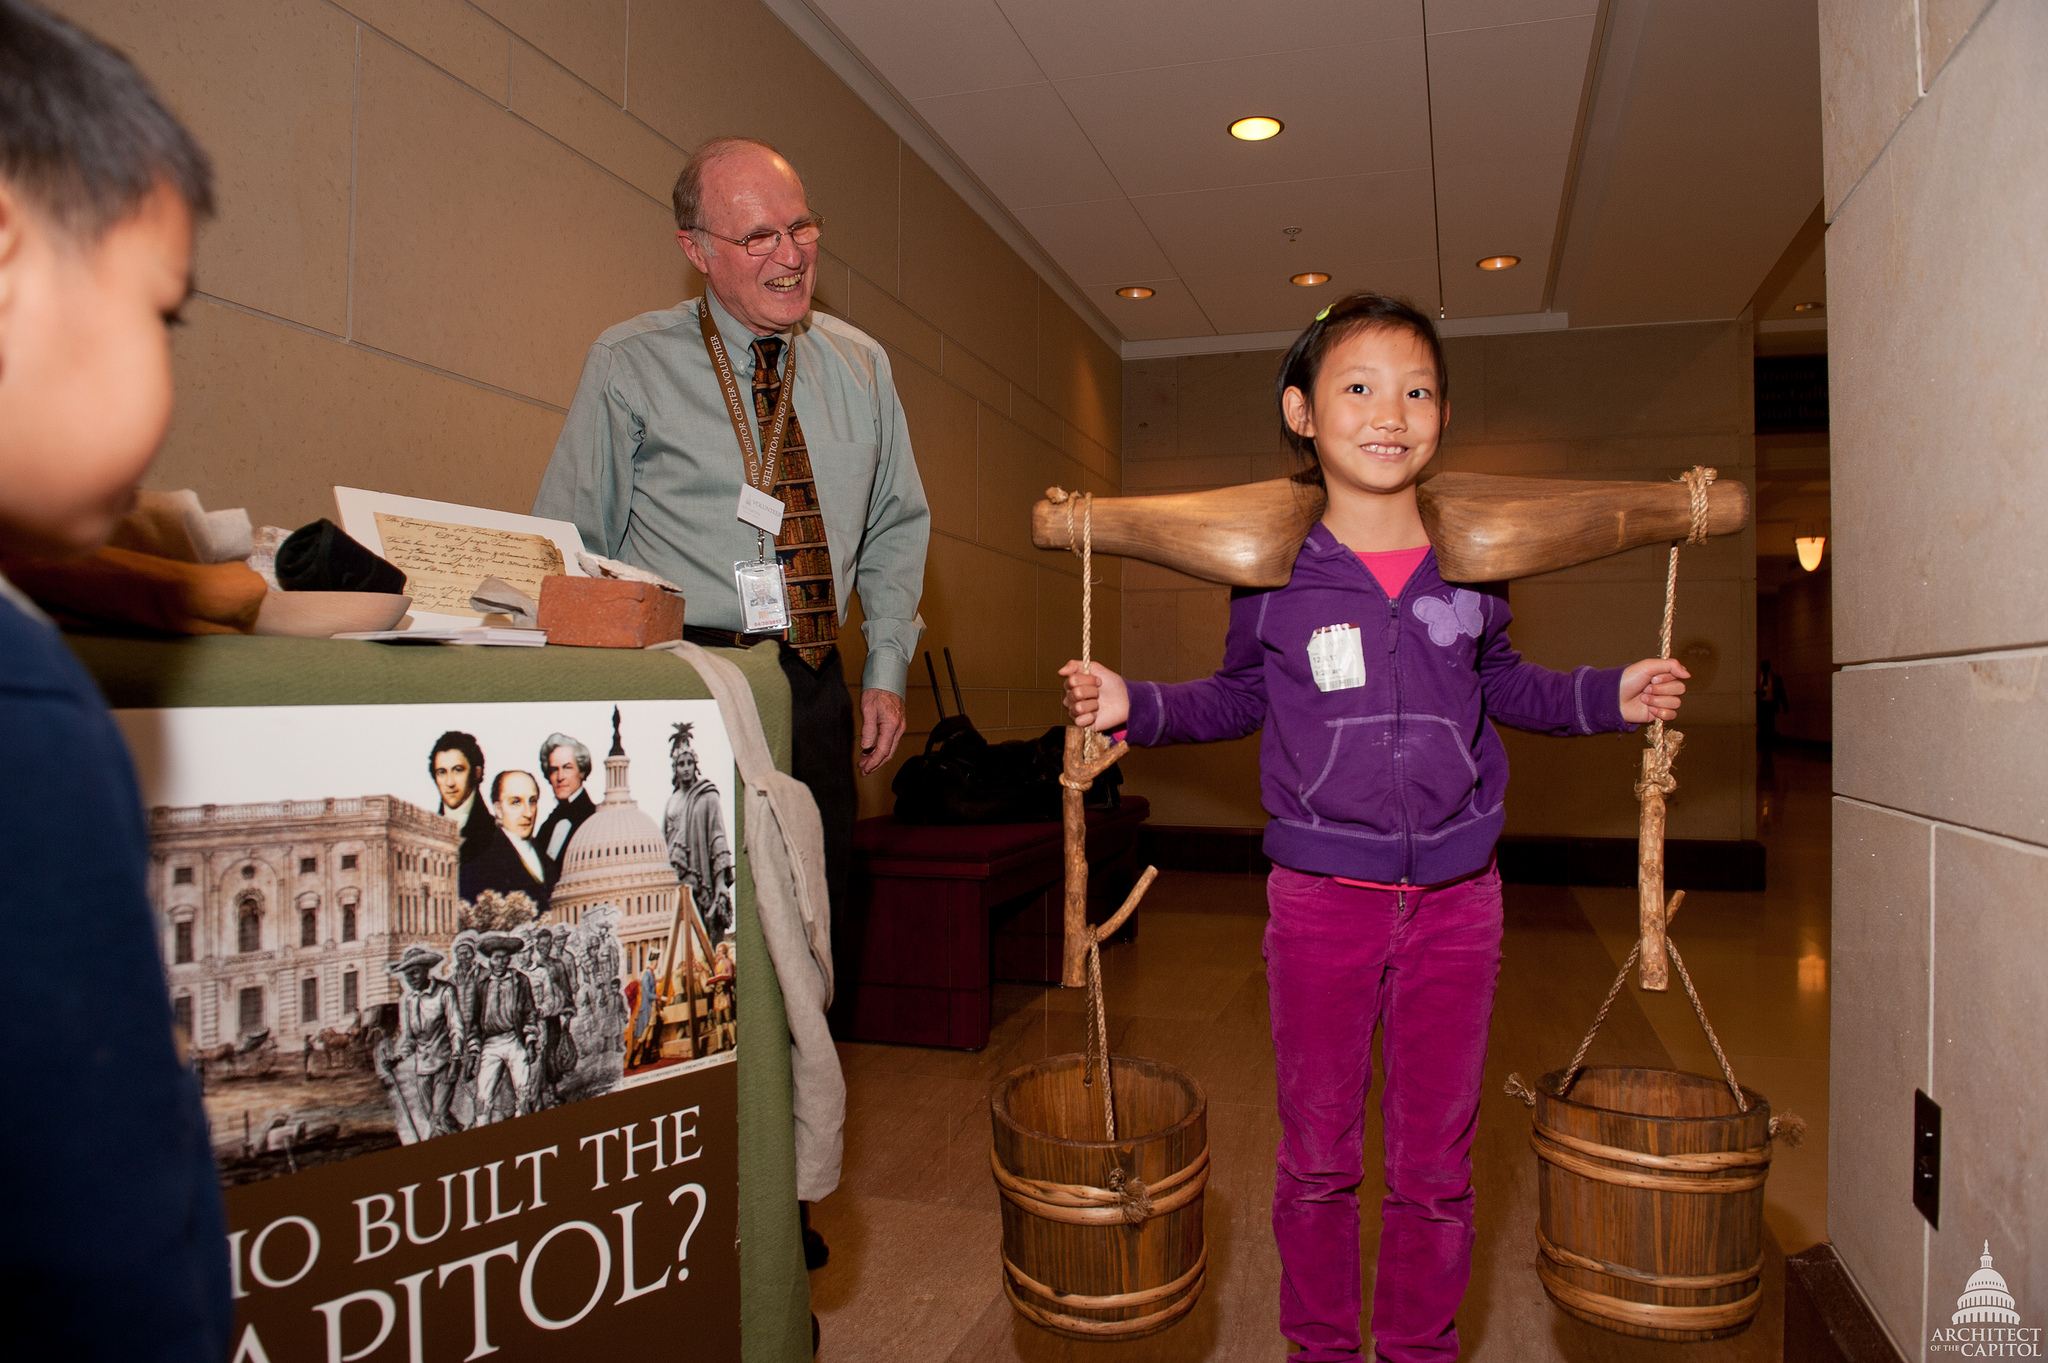 An education cart at the Capitol Visitor Center teaches children about the construction of the U.S. Capitol and the workers who helped to build it.